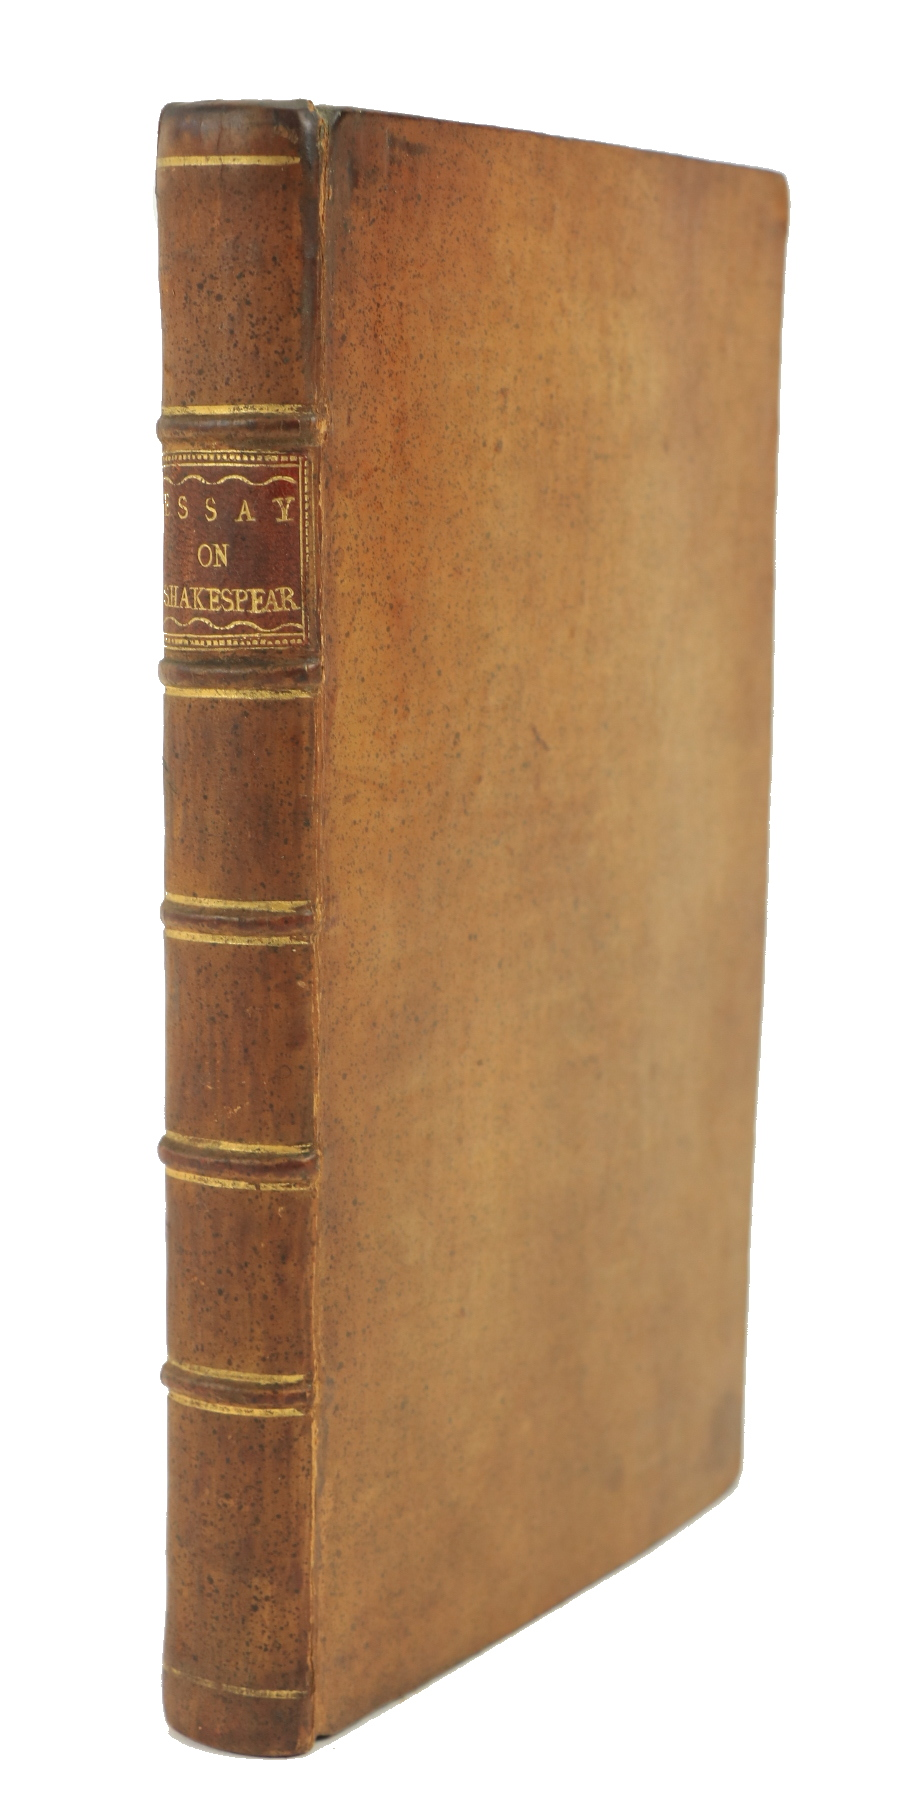 [Montague (Eliz.)]ÿAn Essay on the Writings and Genius of Shakespeare, compared with the Greek and